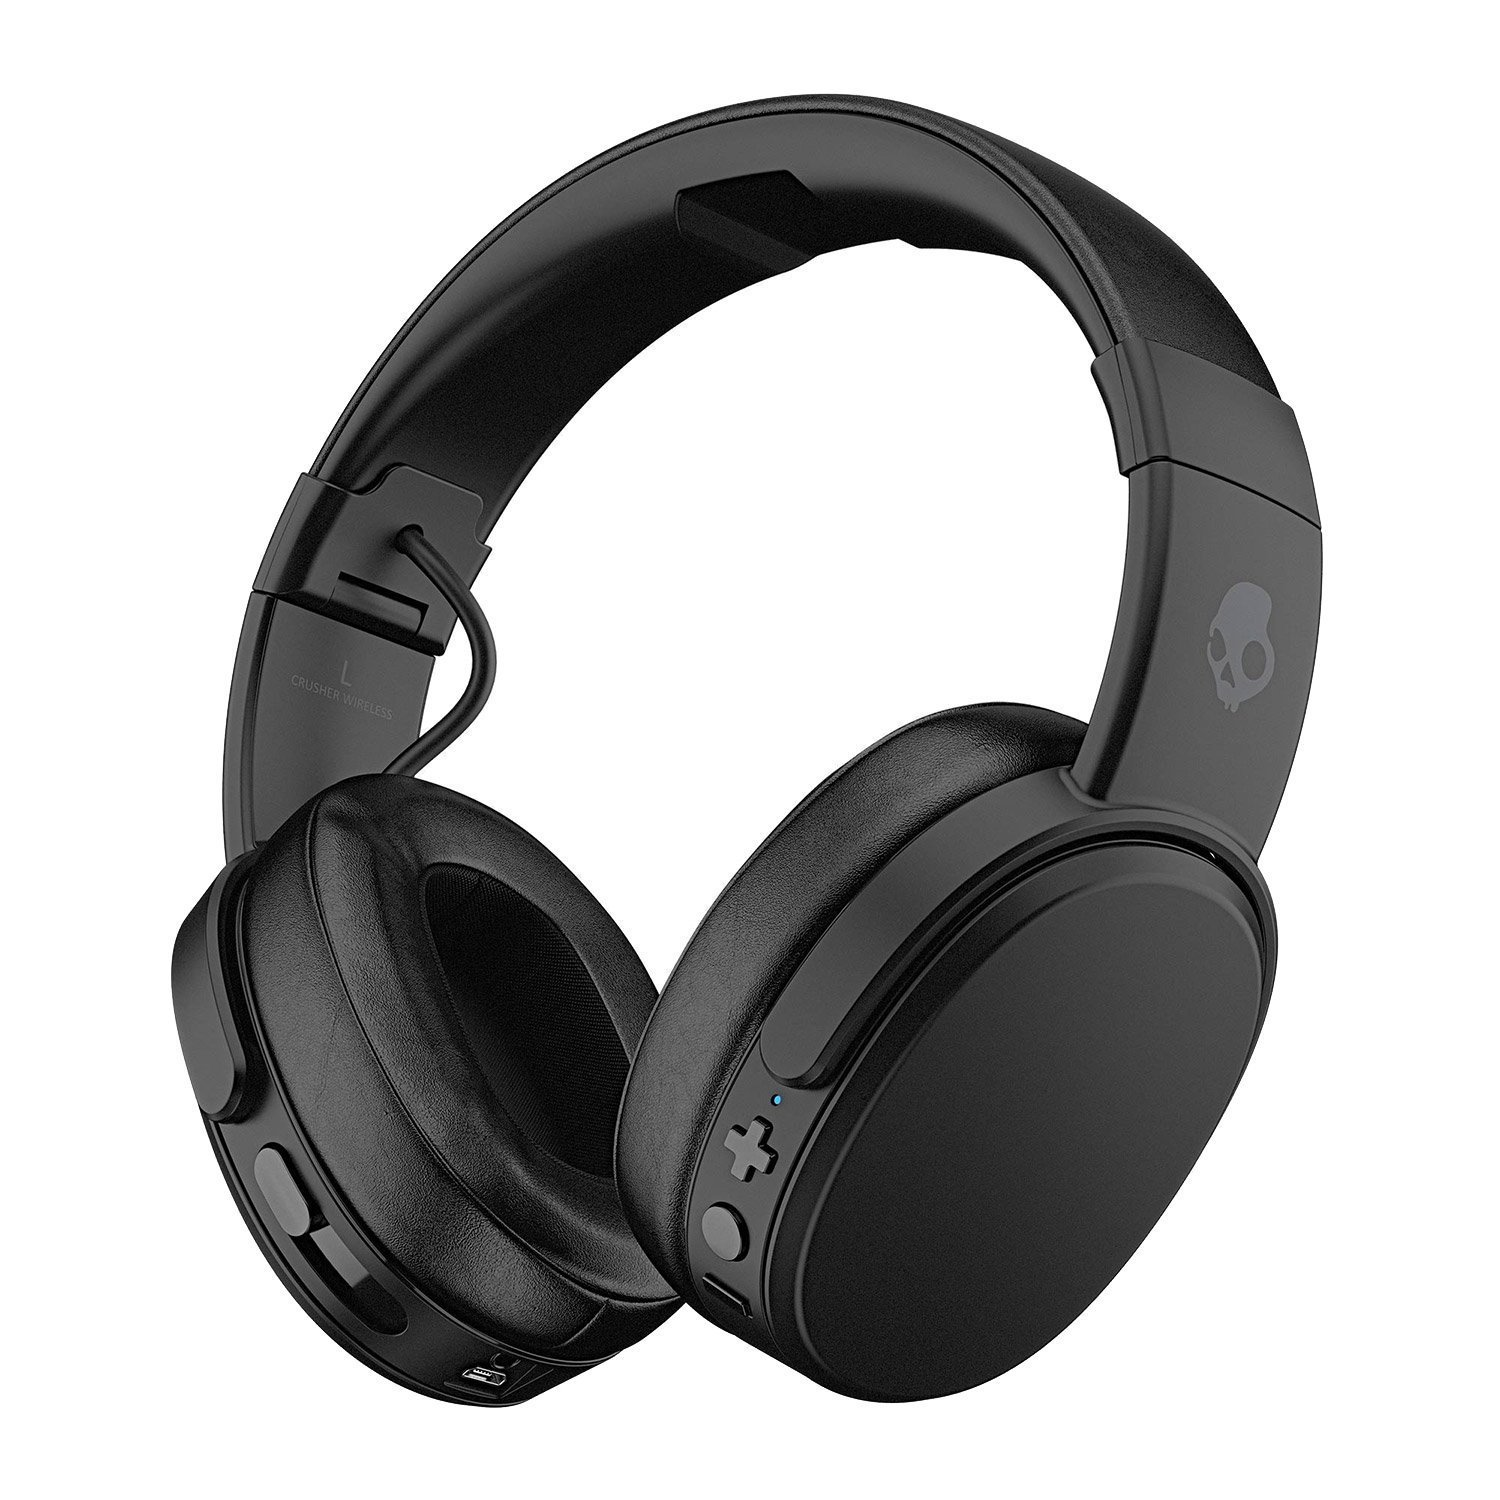 Skullcandy Crusher Bluetooth Wireless Over-Ear Headphones with Microphone - (Renewed) (Black)